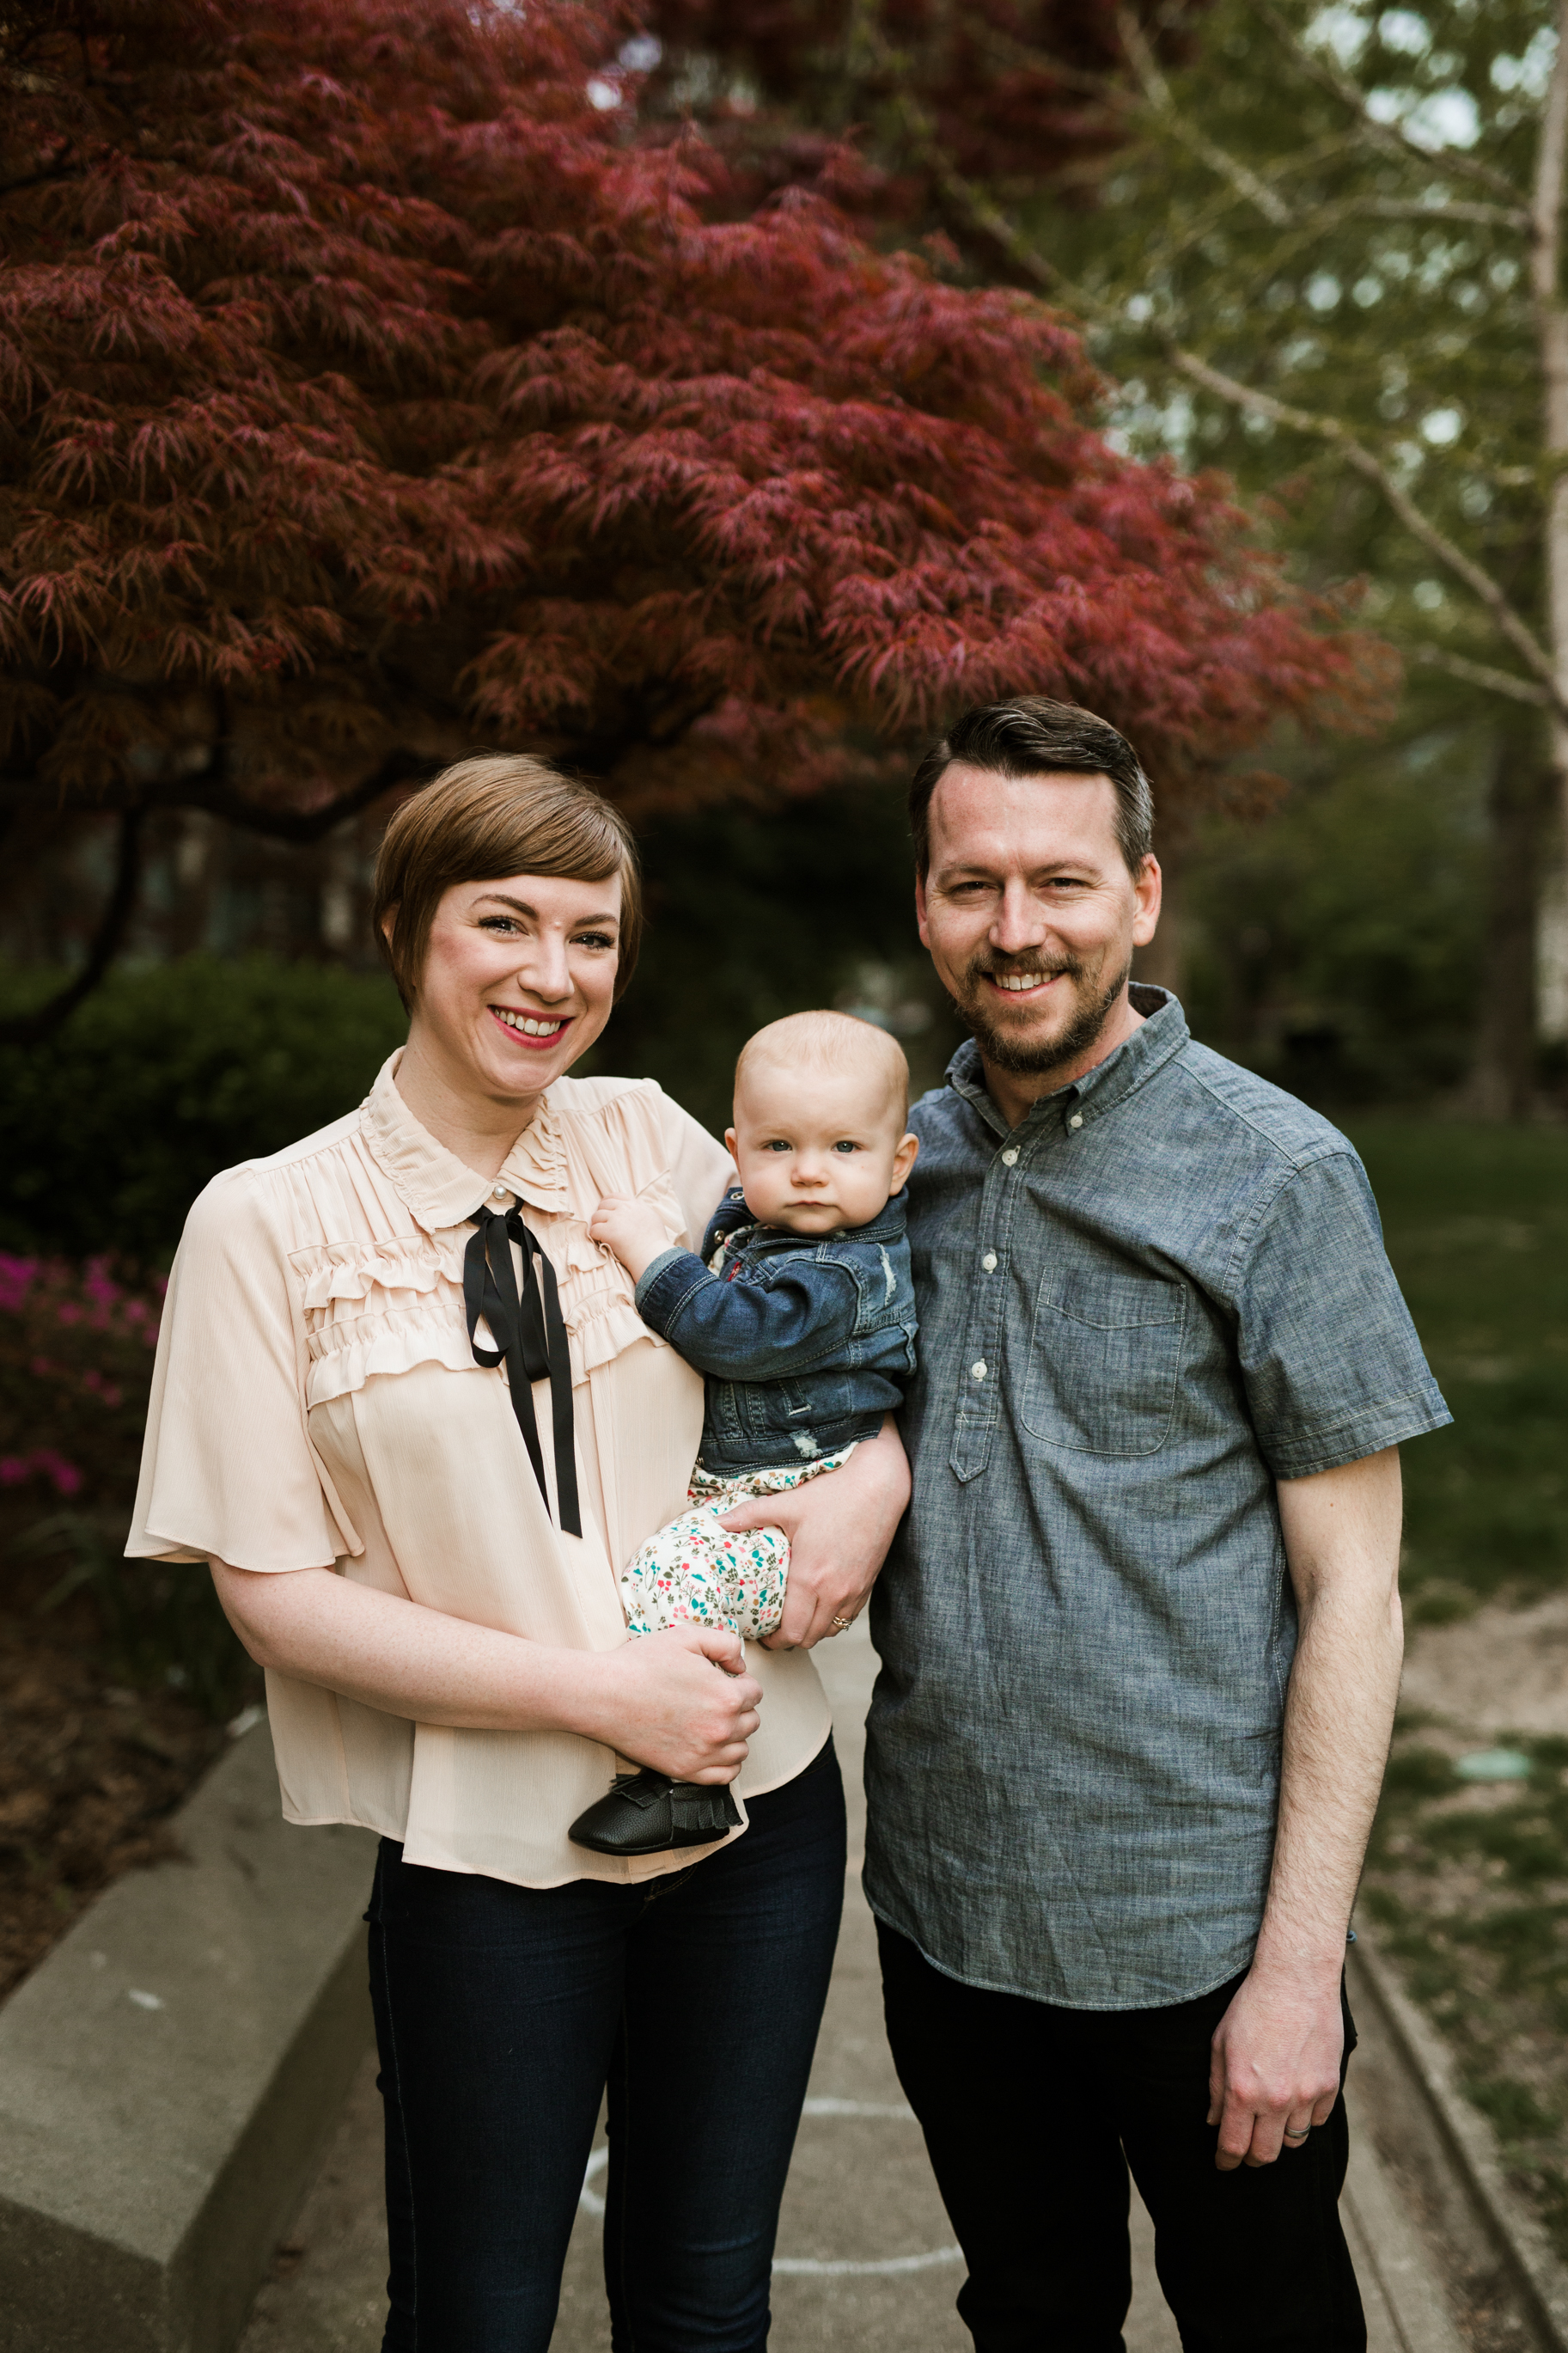 Rylan, Katie & Tim Read April 2018 Crystal Ludwick Photo WEBSITE 2 (11 of 41).jpg